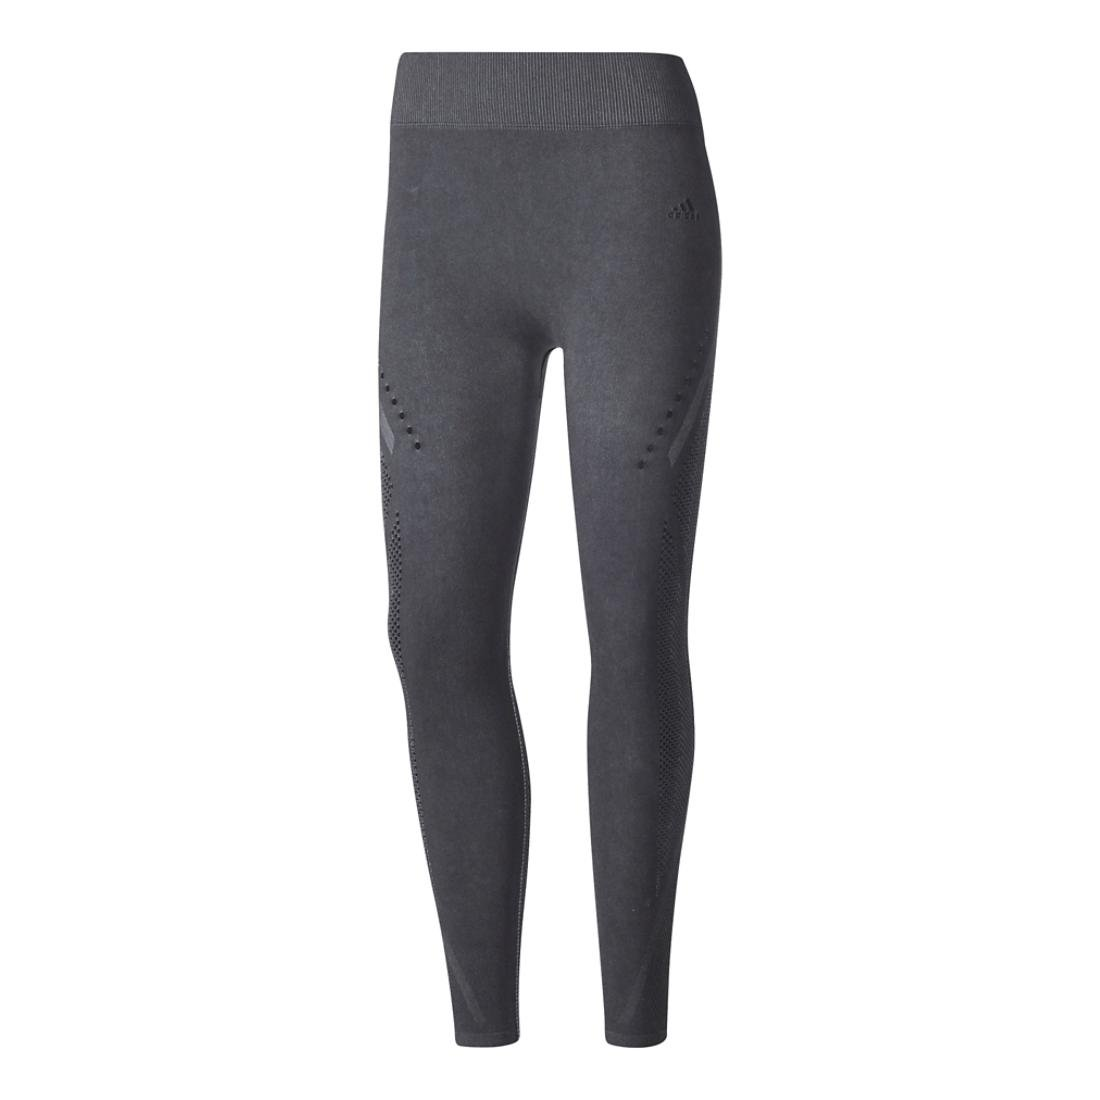 4e4881ef5882c1 Amazon.com: adidas Womens Fitness Yoga Athletic Leggings: Clothing